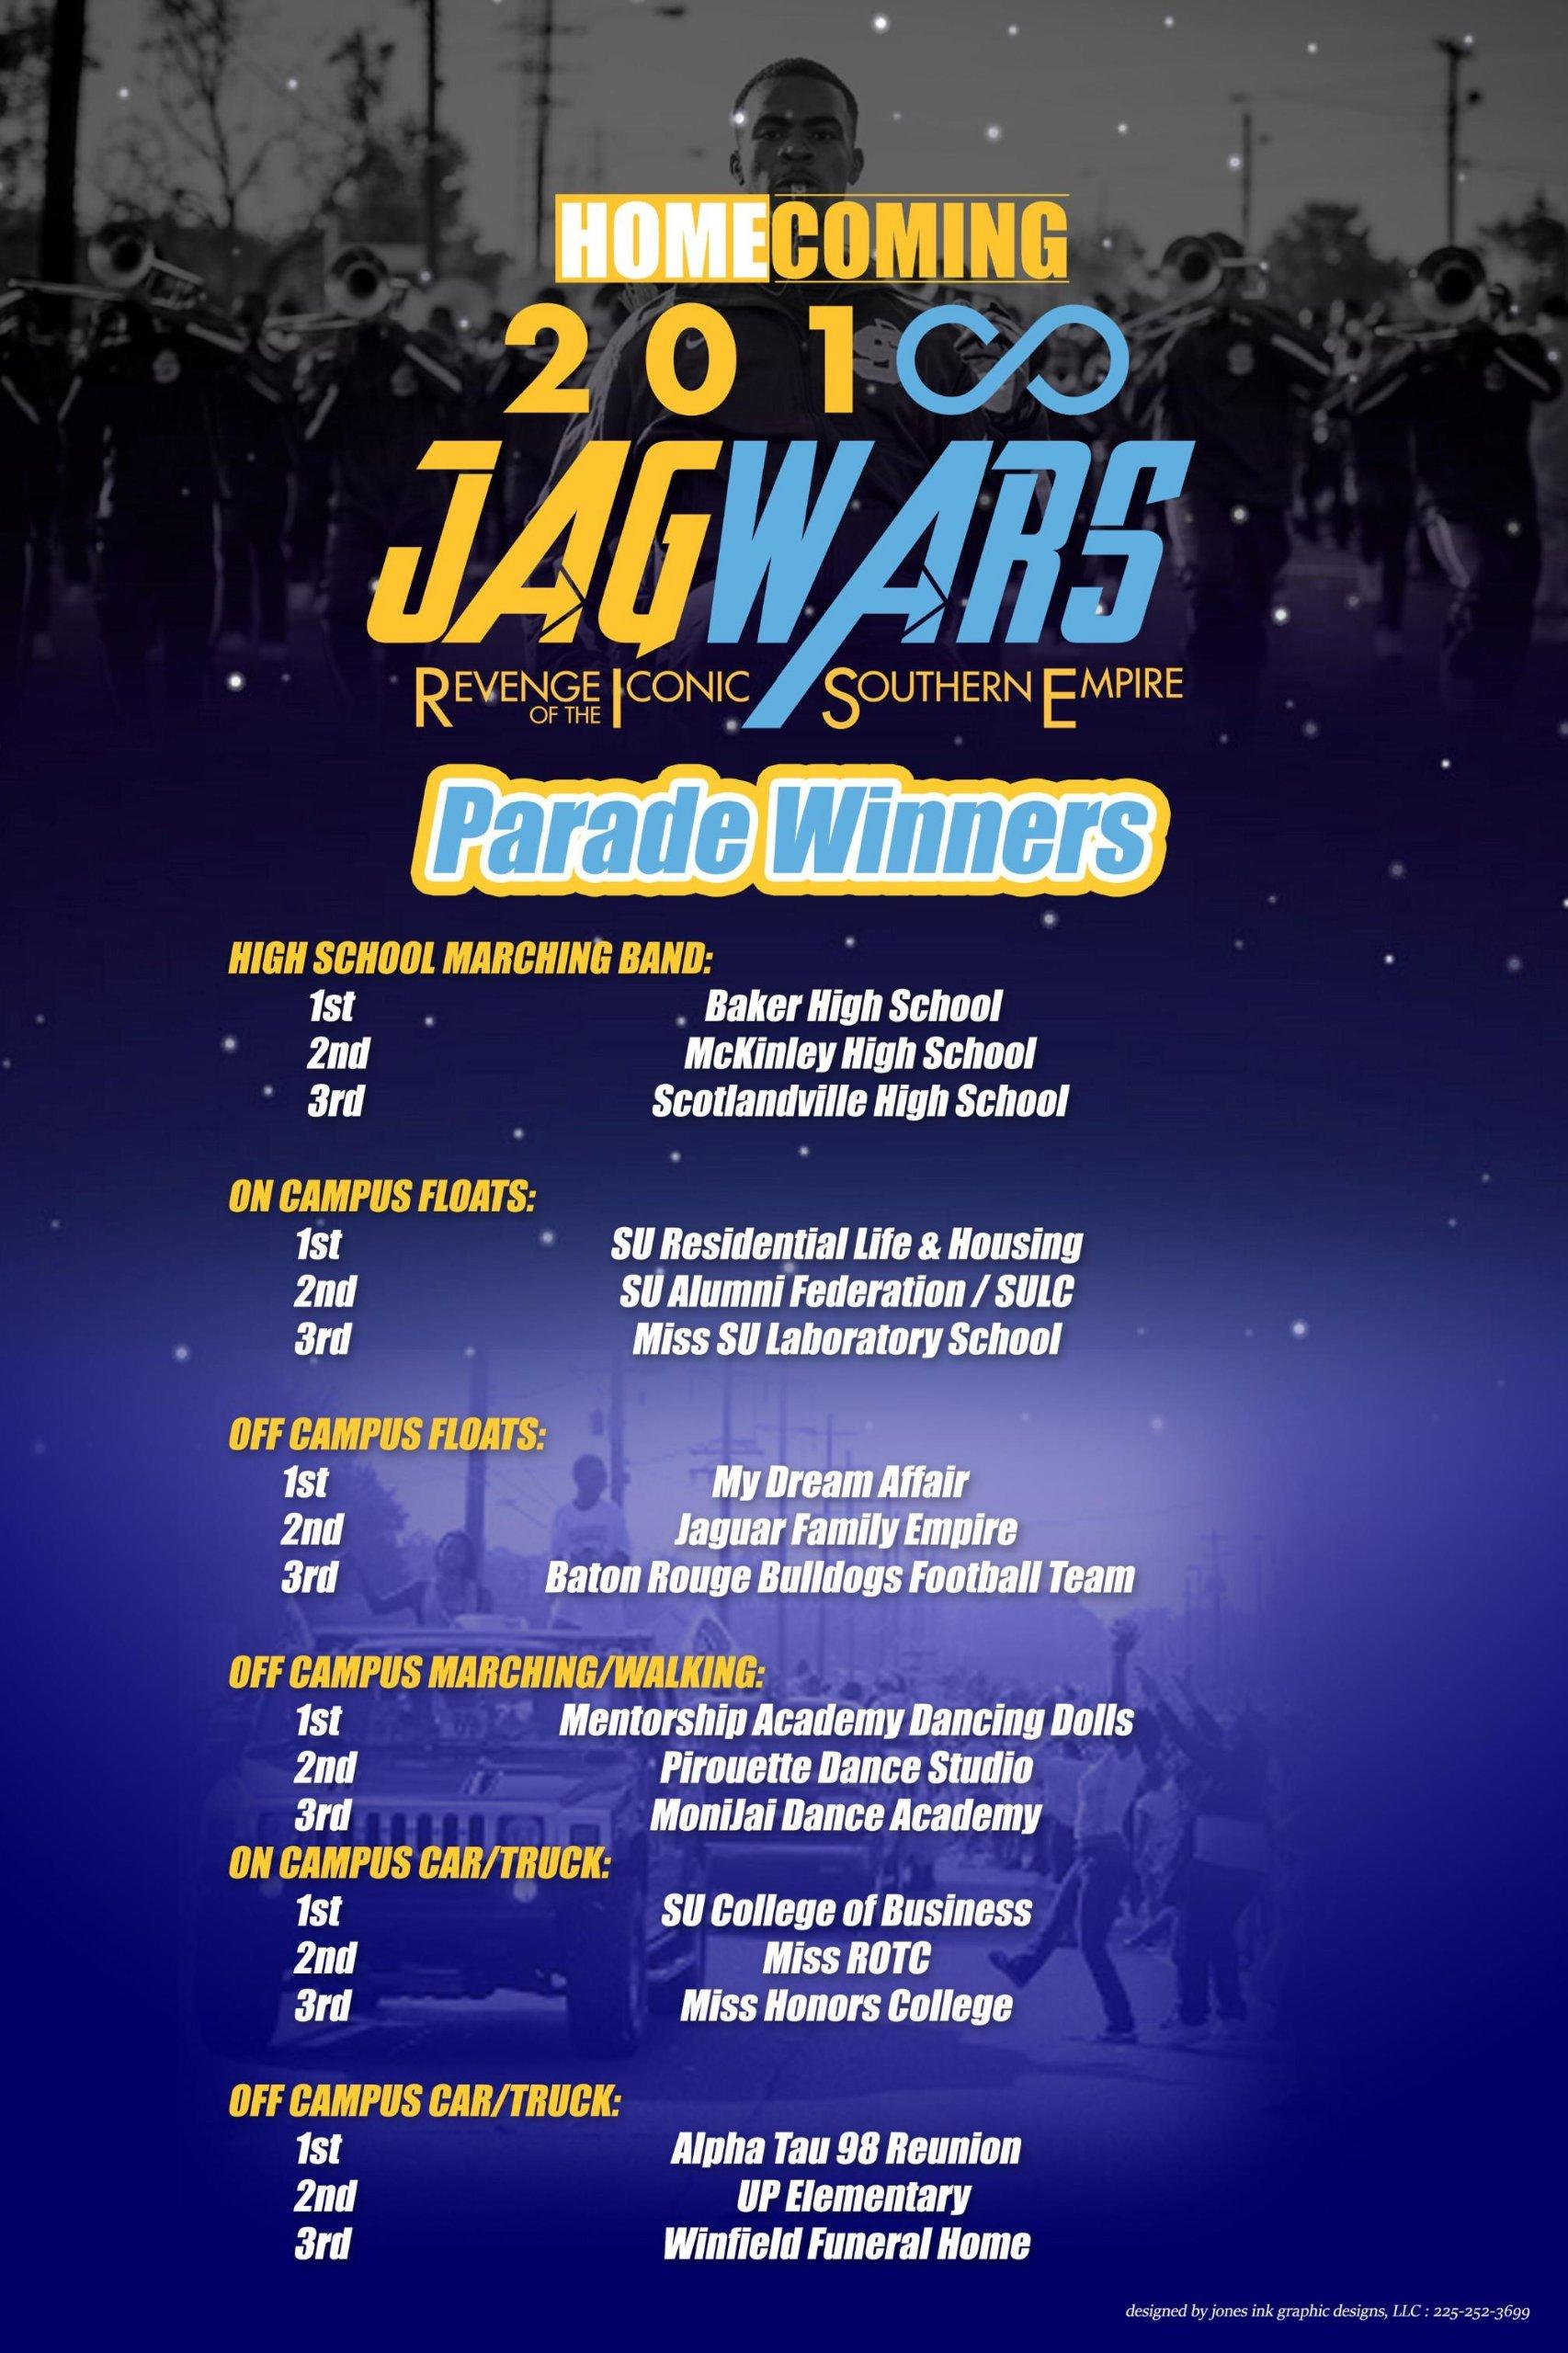 a poster from Southern University JagWars Parade Contest. It listed winners in certain categories